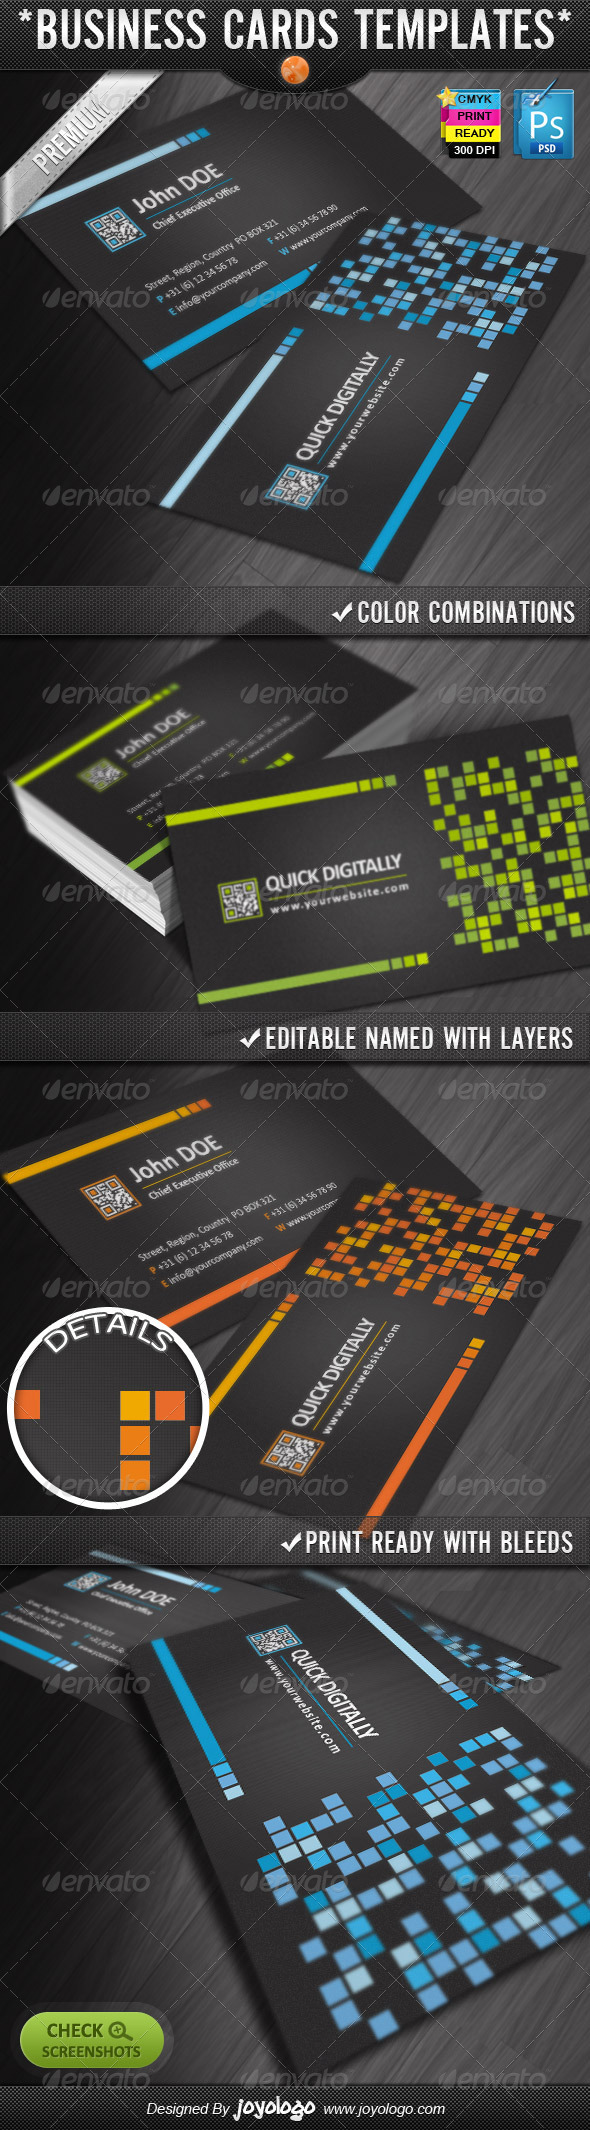 Digitally Quick Response Business Cards Designs - Creative Business Cards